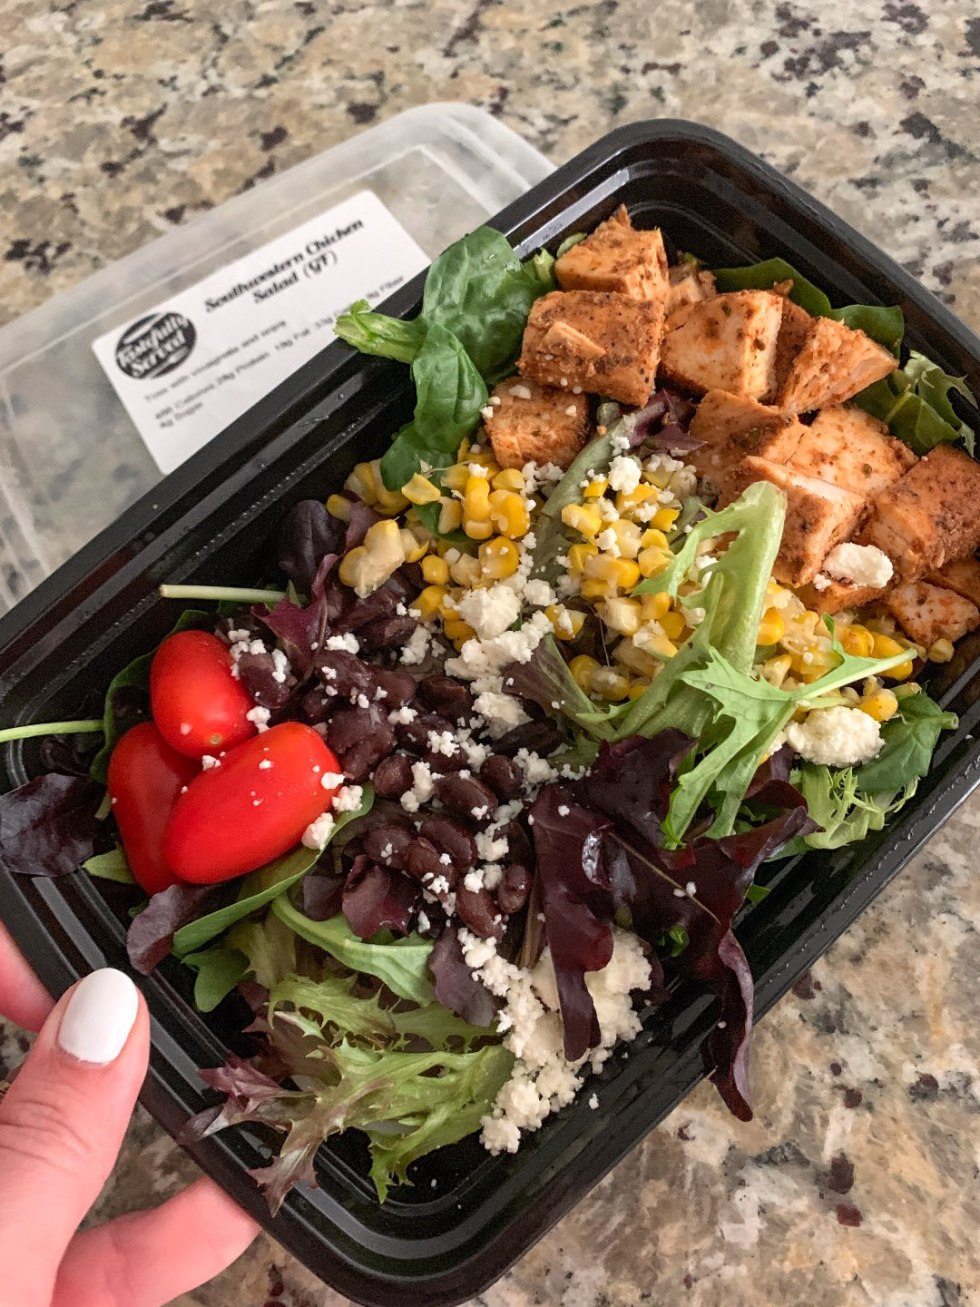 Weeknight Meal Ideas with Tastefully Served - I'm Fixin' To - @mbg0112 | Weeknight Meal Ideas with Tastefully Served by popular North Carolina lifestyle blogger, I'm Fixin' To: image of Tastefully Served Southwestern Chicken Salad.